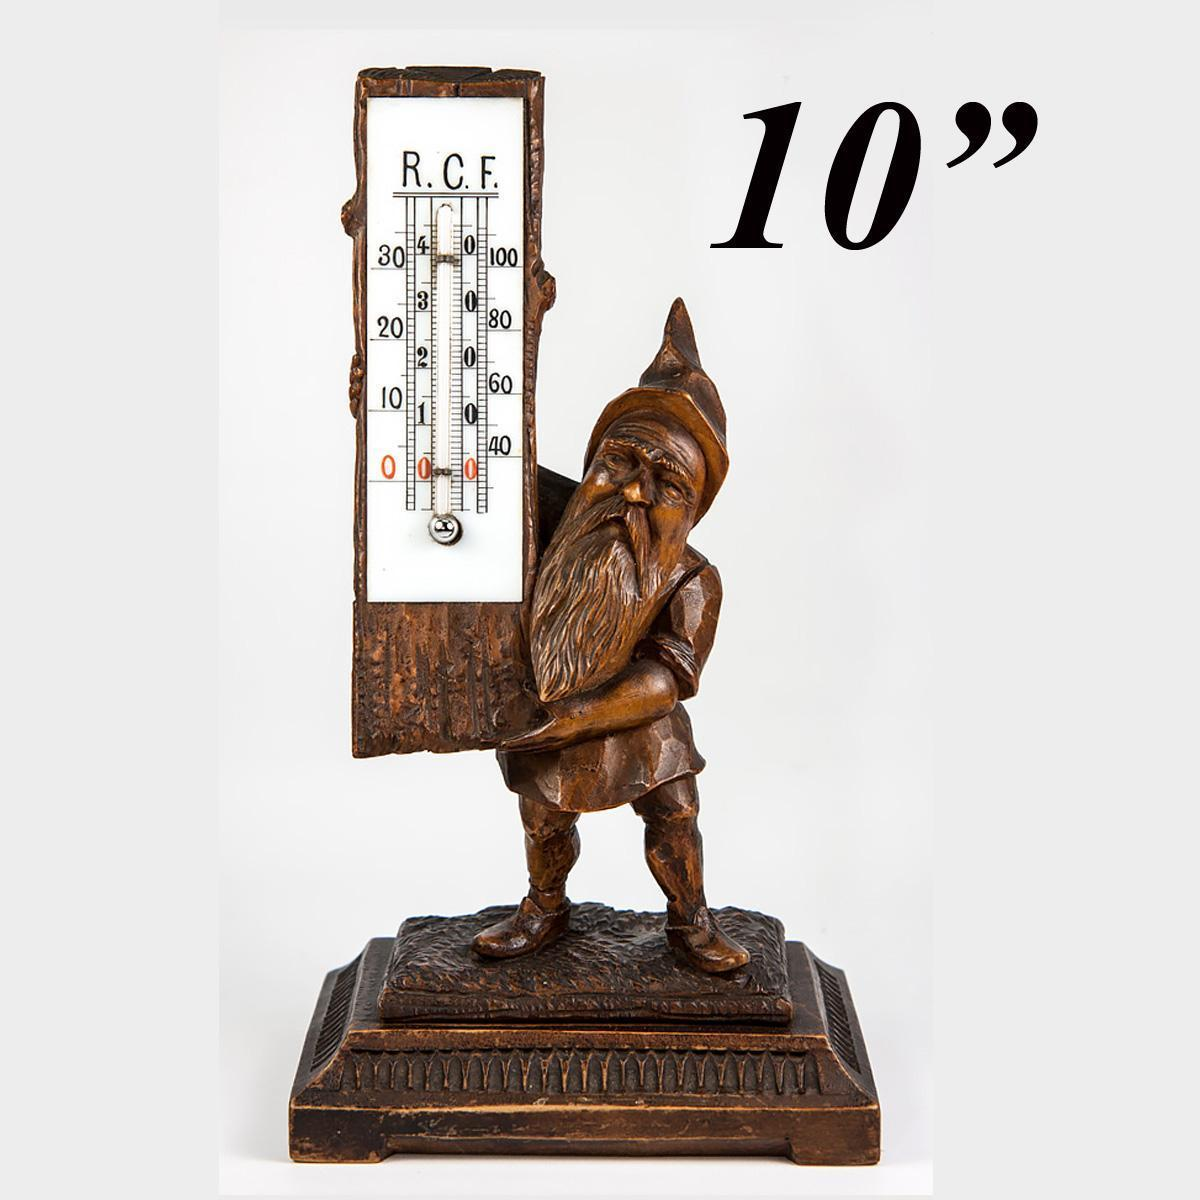 Antique Black Forest Carved Wood Gnome Desk Top Thermometer Stand, c.1880s